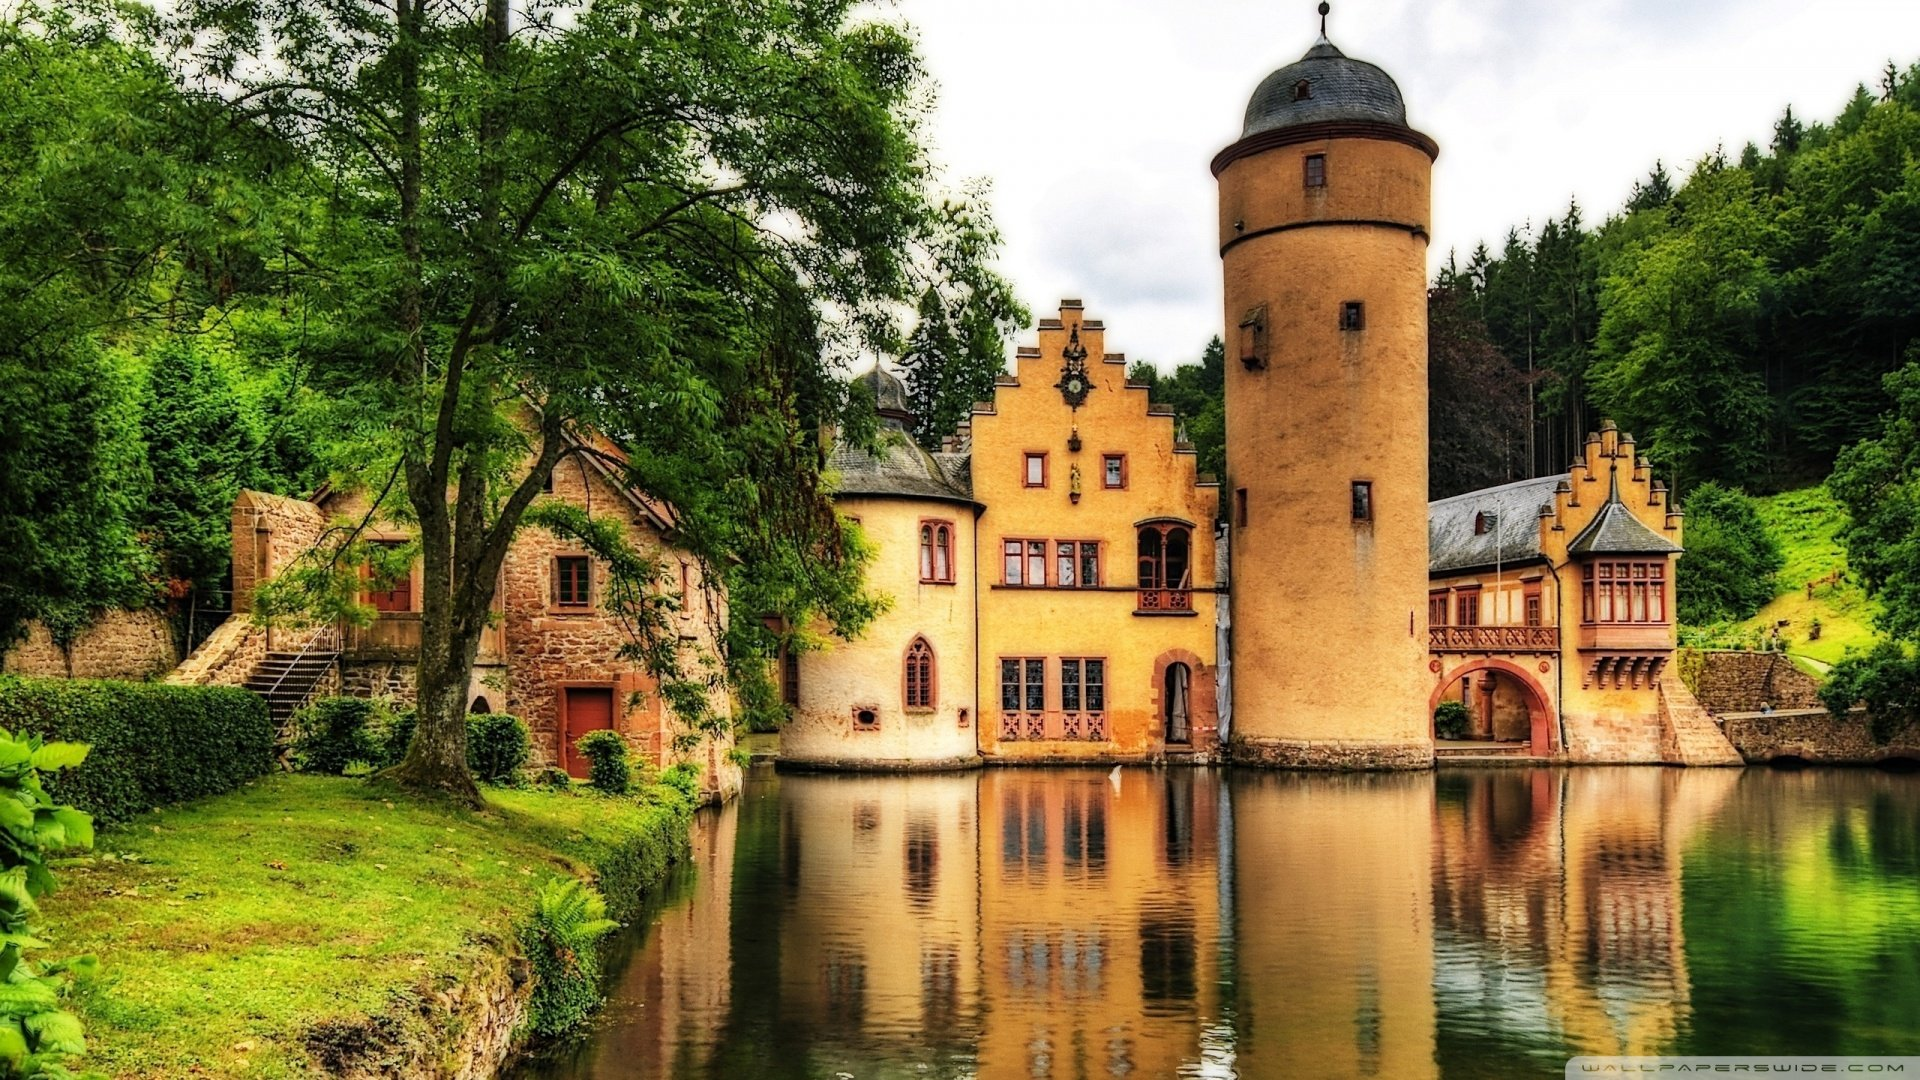 castle germany wallpaper 1920x1080 mespelbrunn castle germany